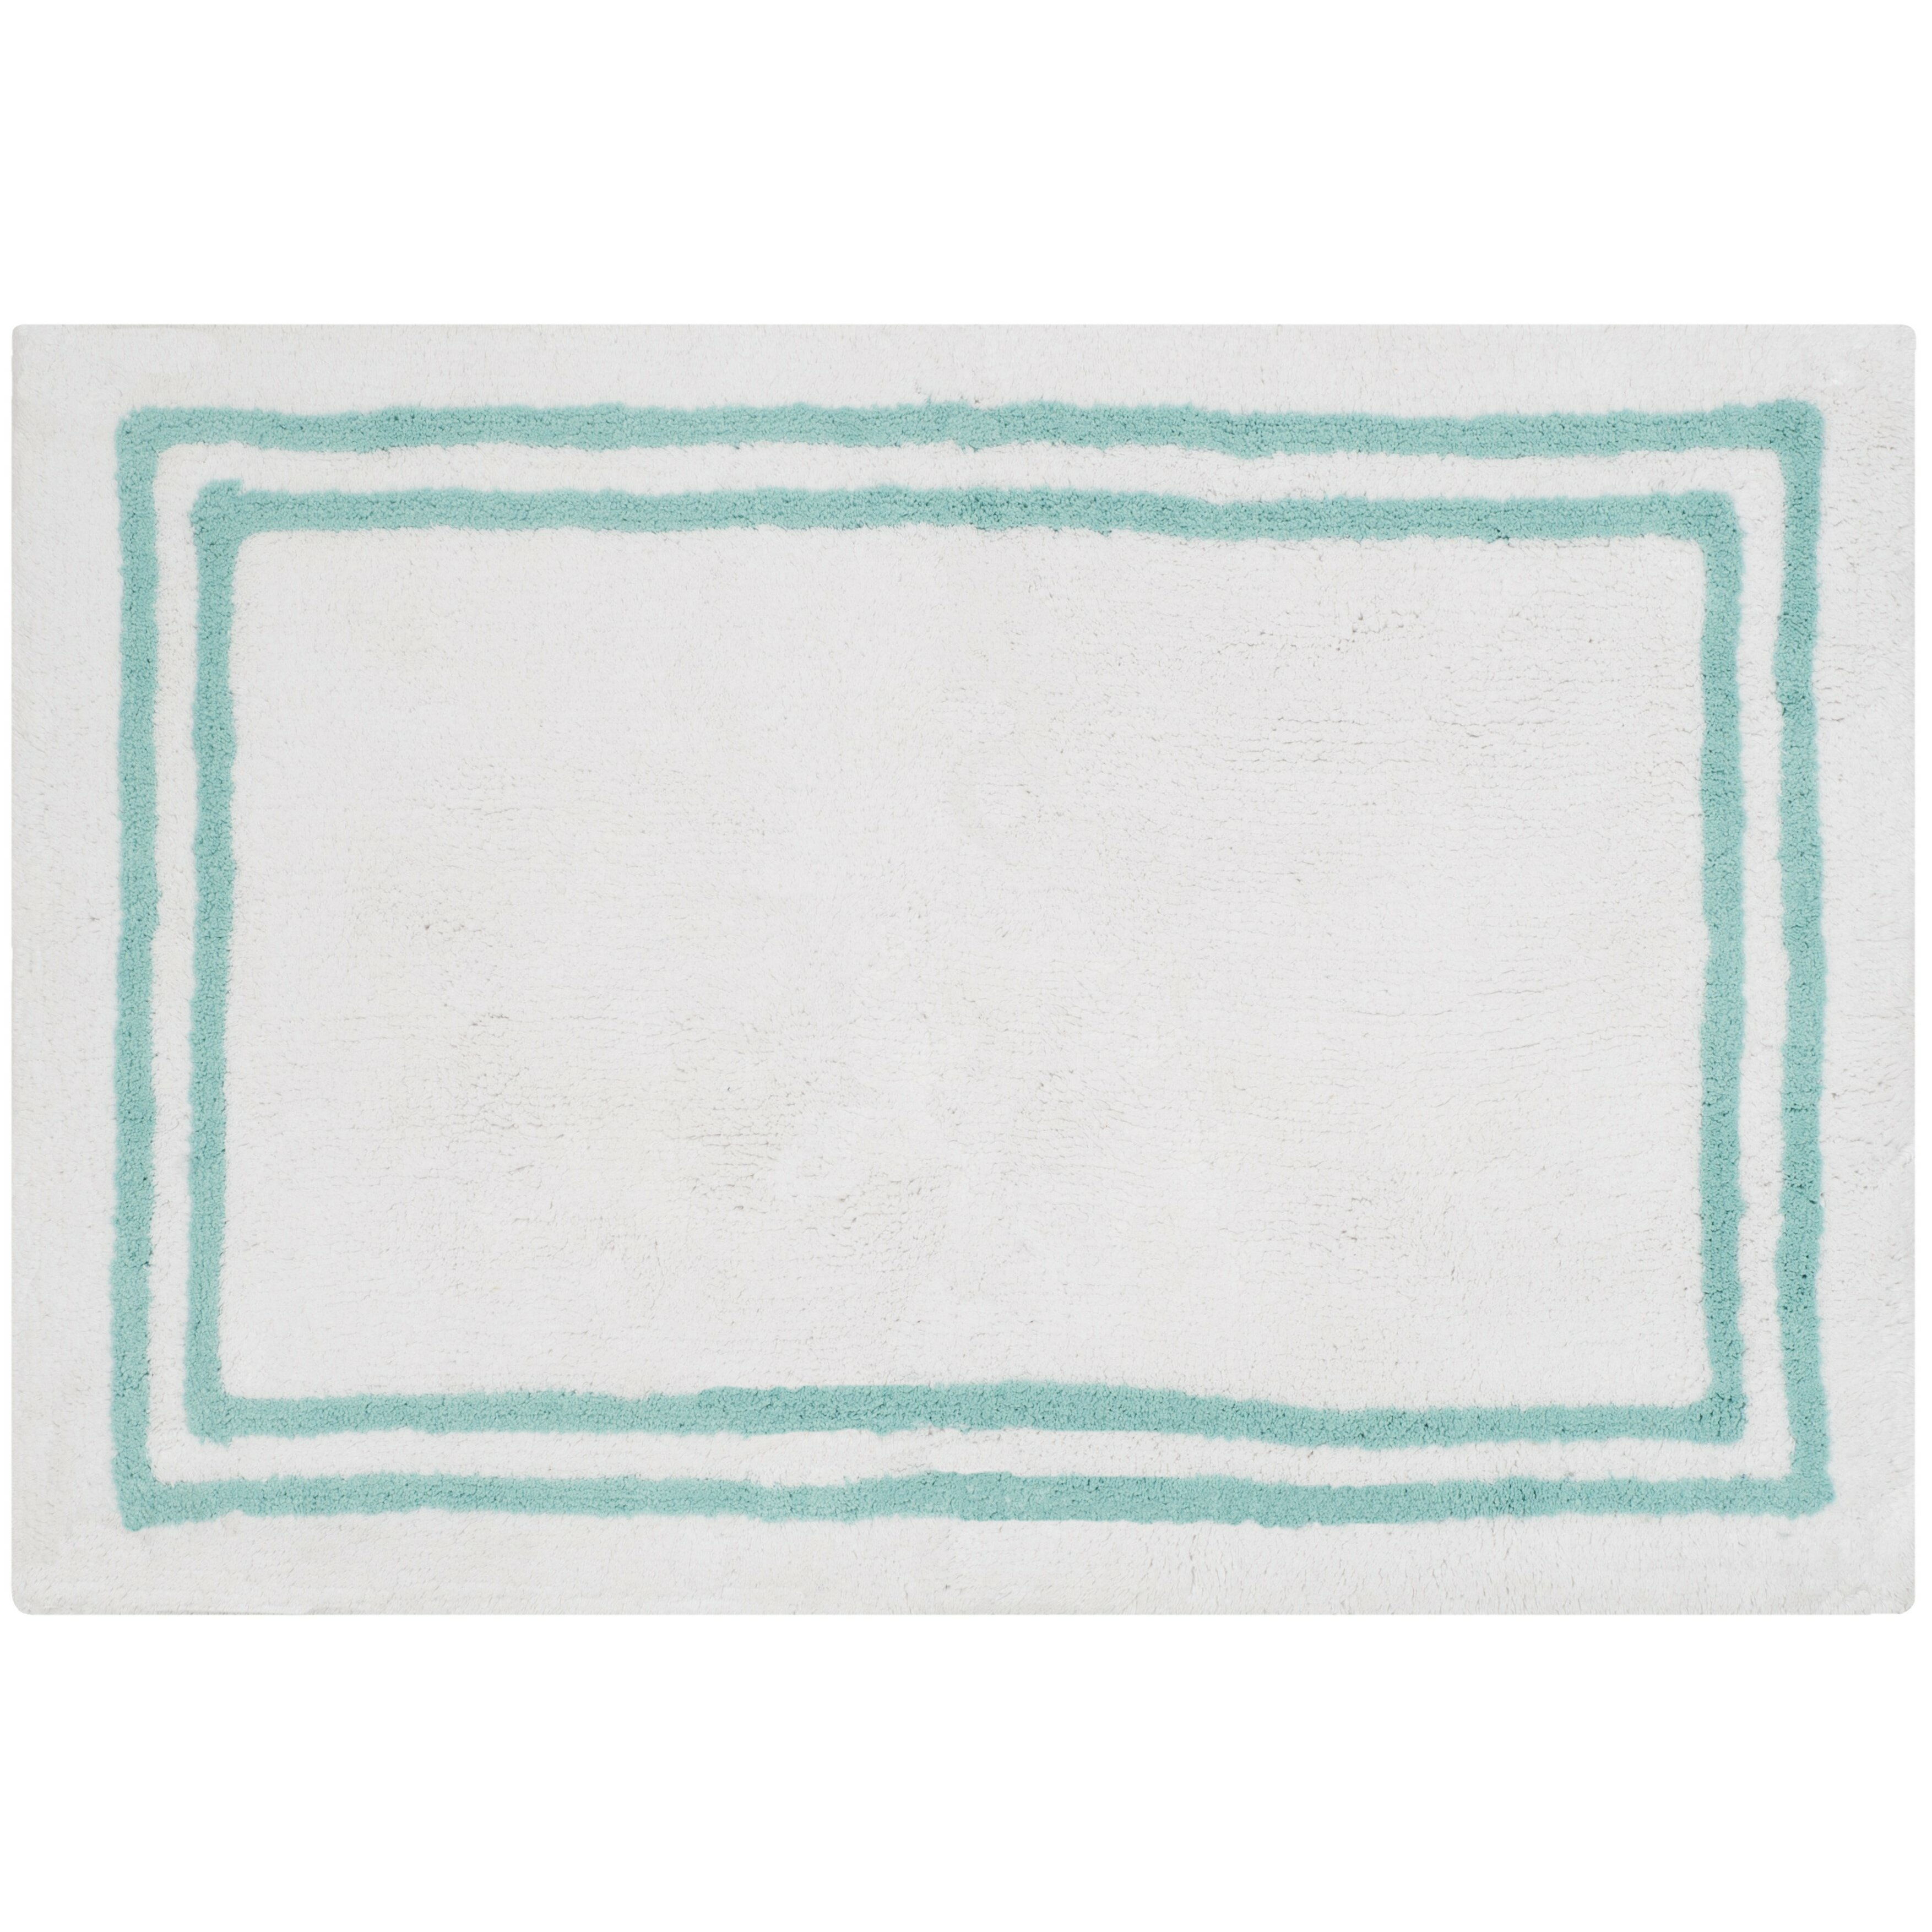 Safavieh plush master bath aqua area rug wayfair for Master bathroom rugs